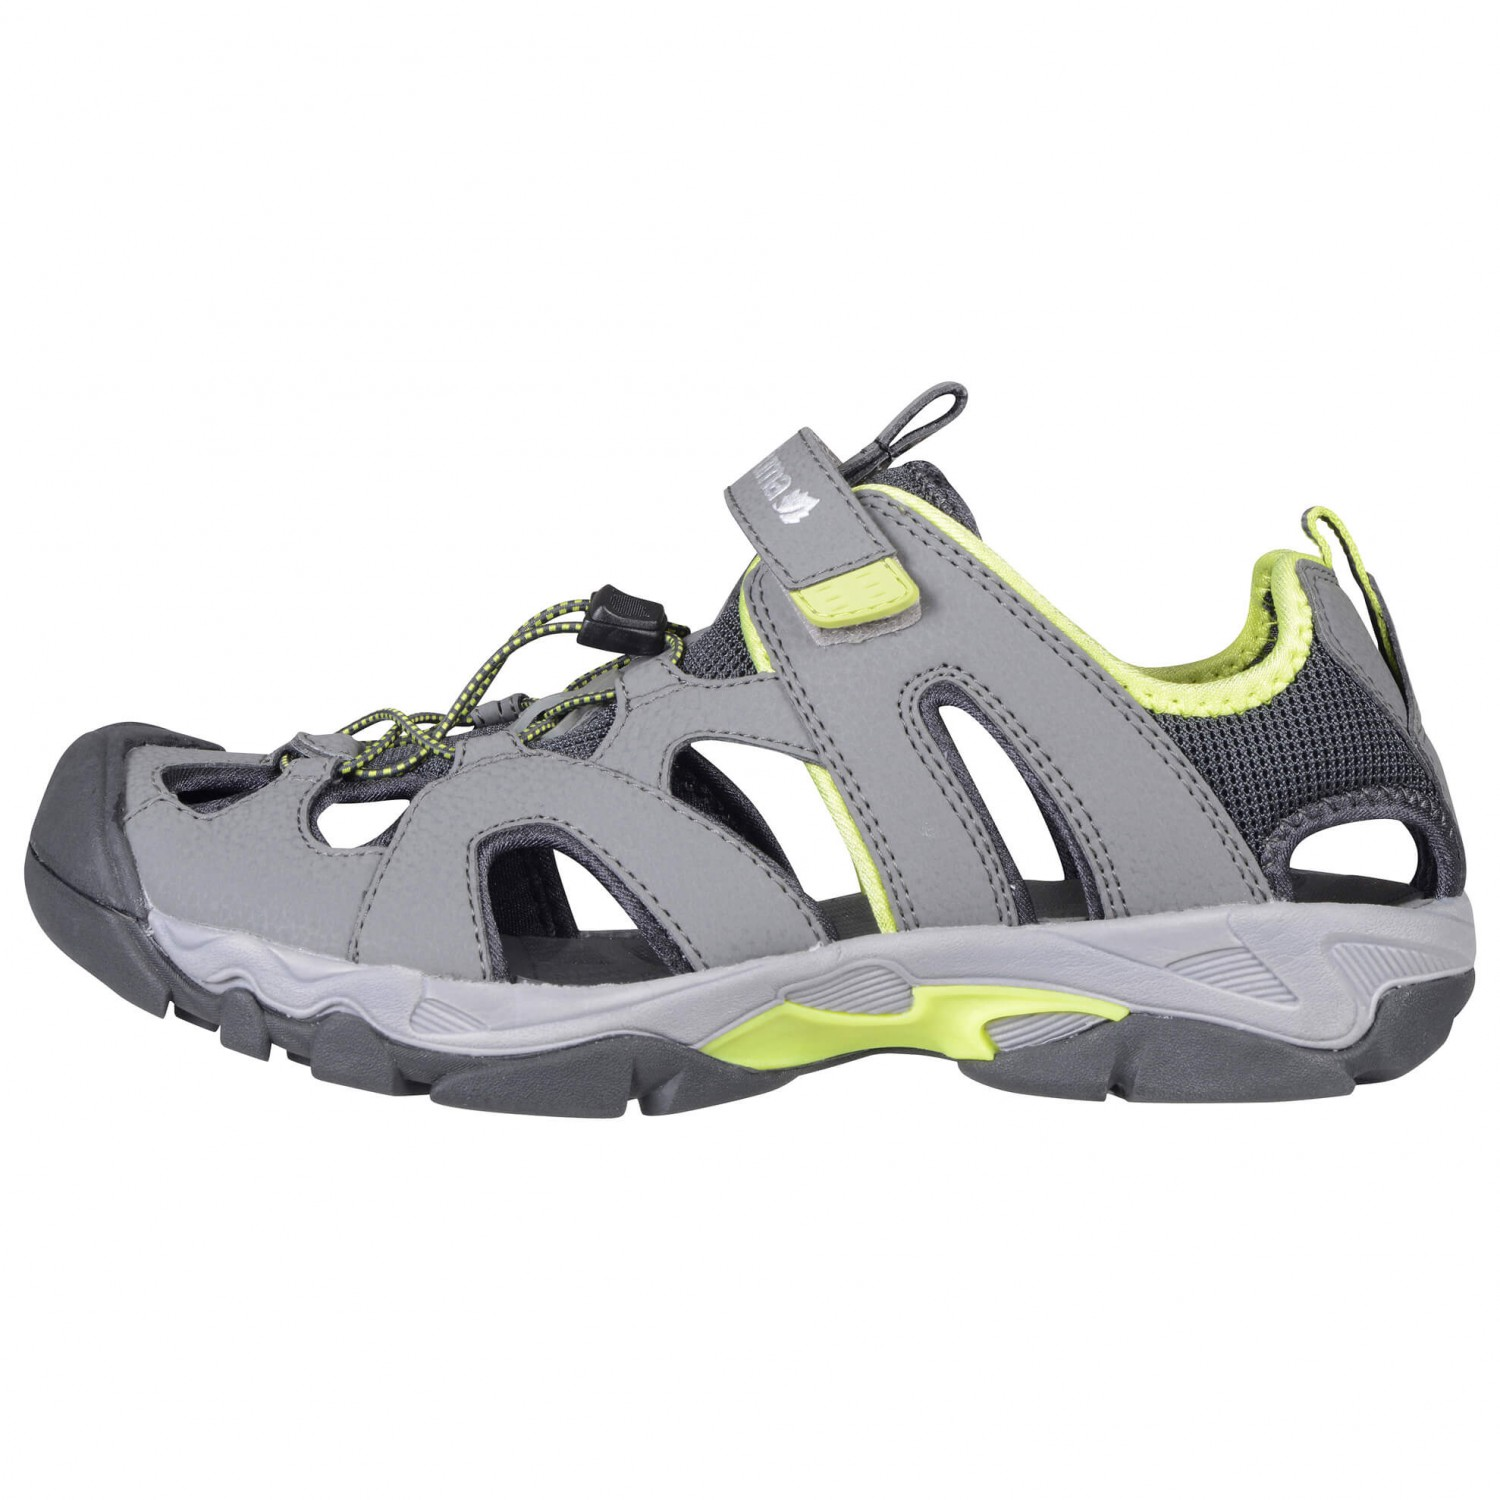 Alpinetrek co Online uk Lafuma Sandals Men'sBuy Kempi vm0wOn8N